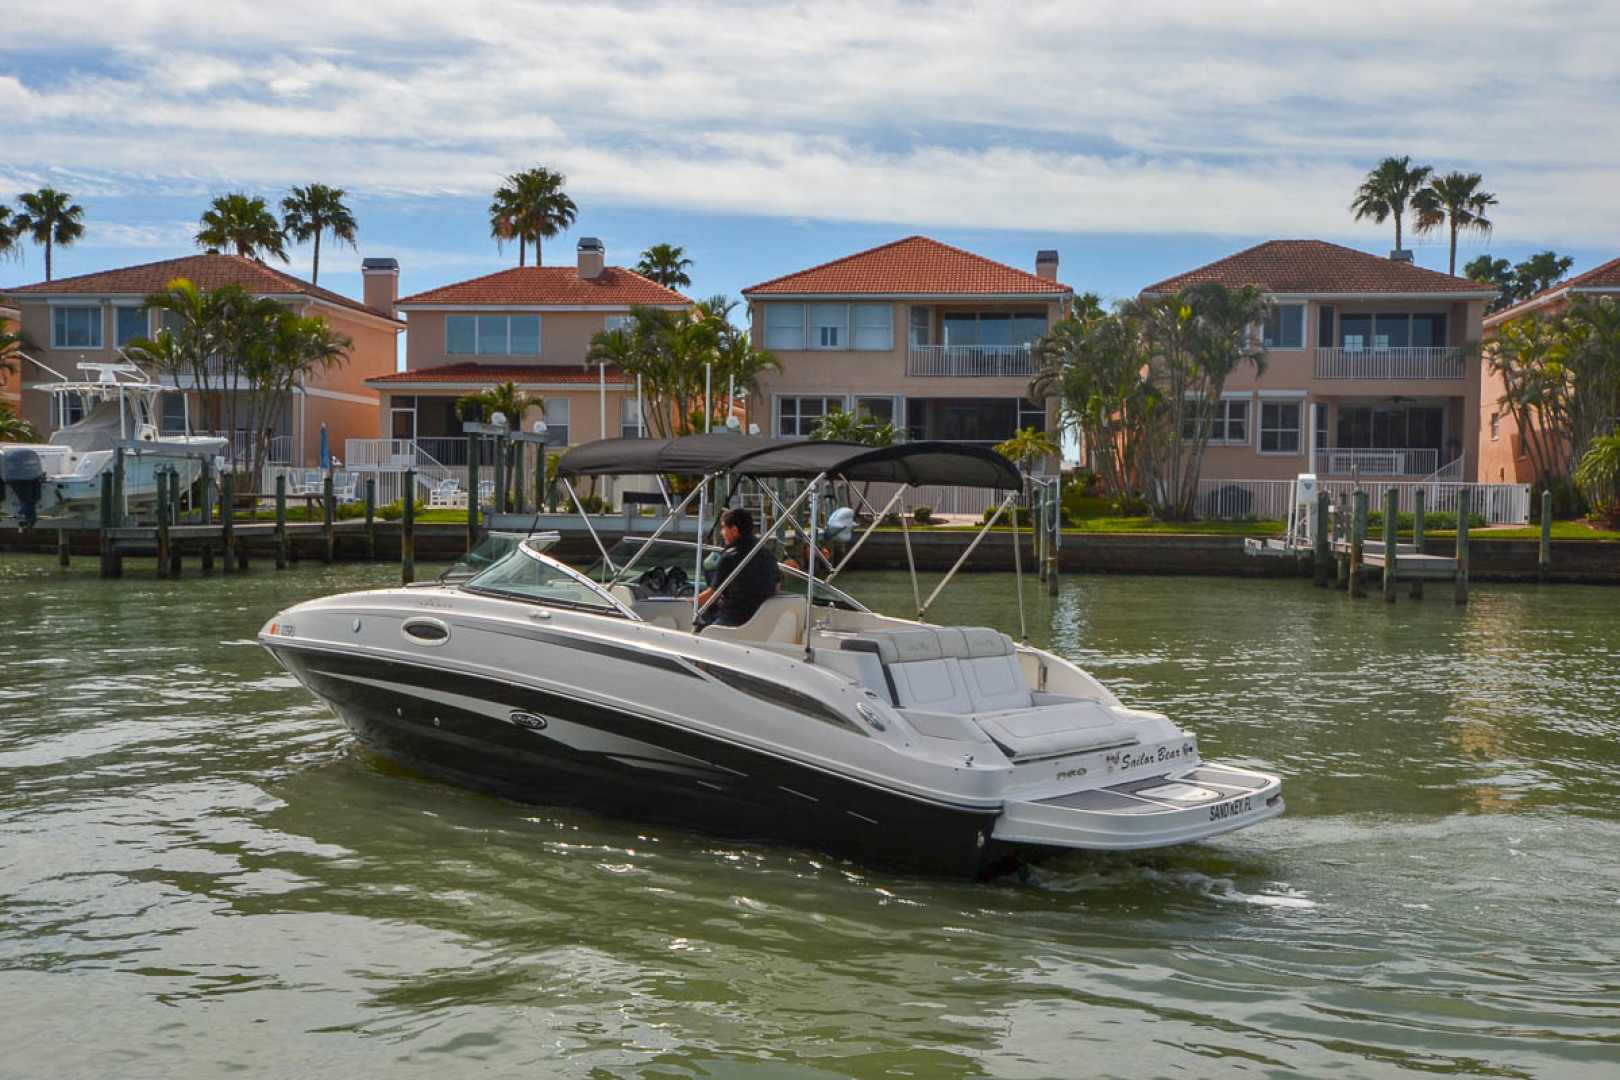 2012 Sea Ray 260 SunDeck-29.jpg